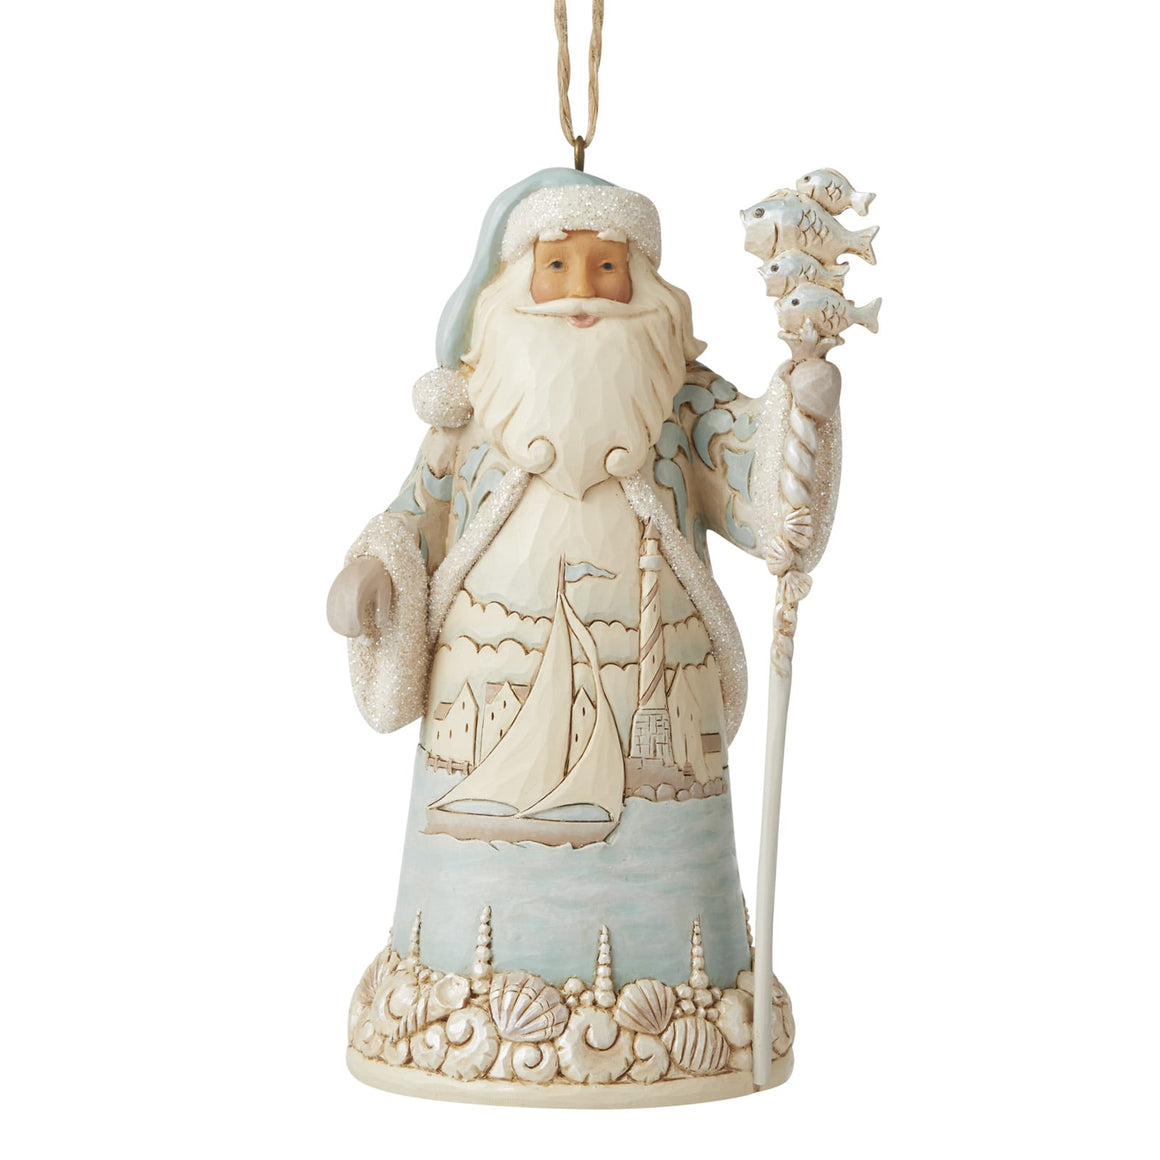 Coastal Santa - Hanging Ornament - Heartwood Creek by Jim Shore